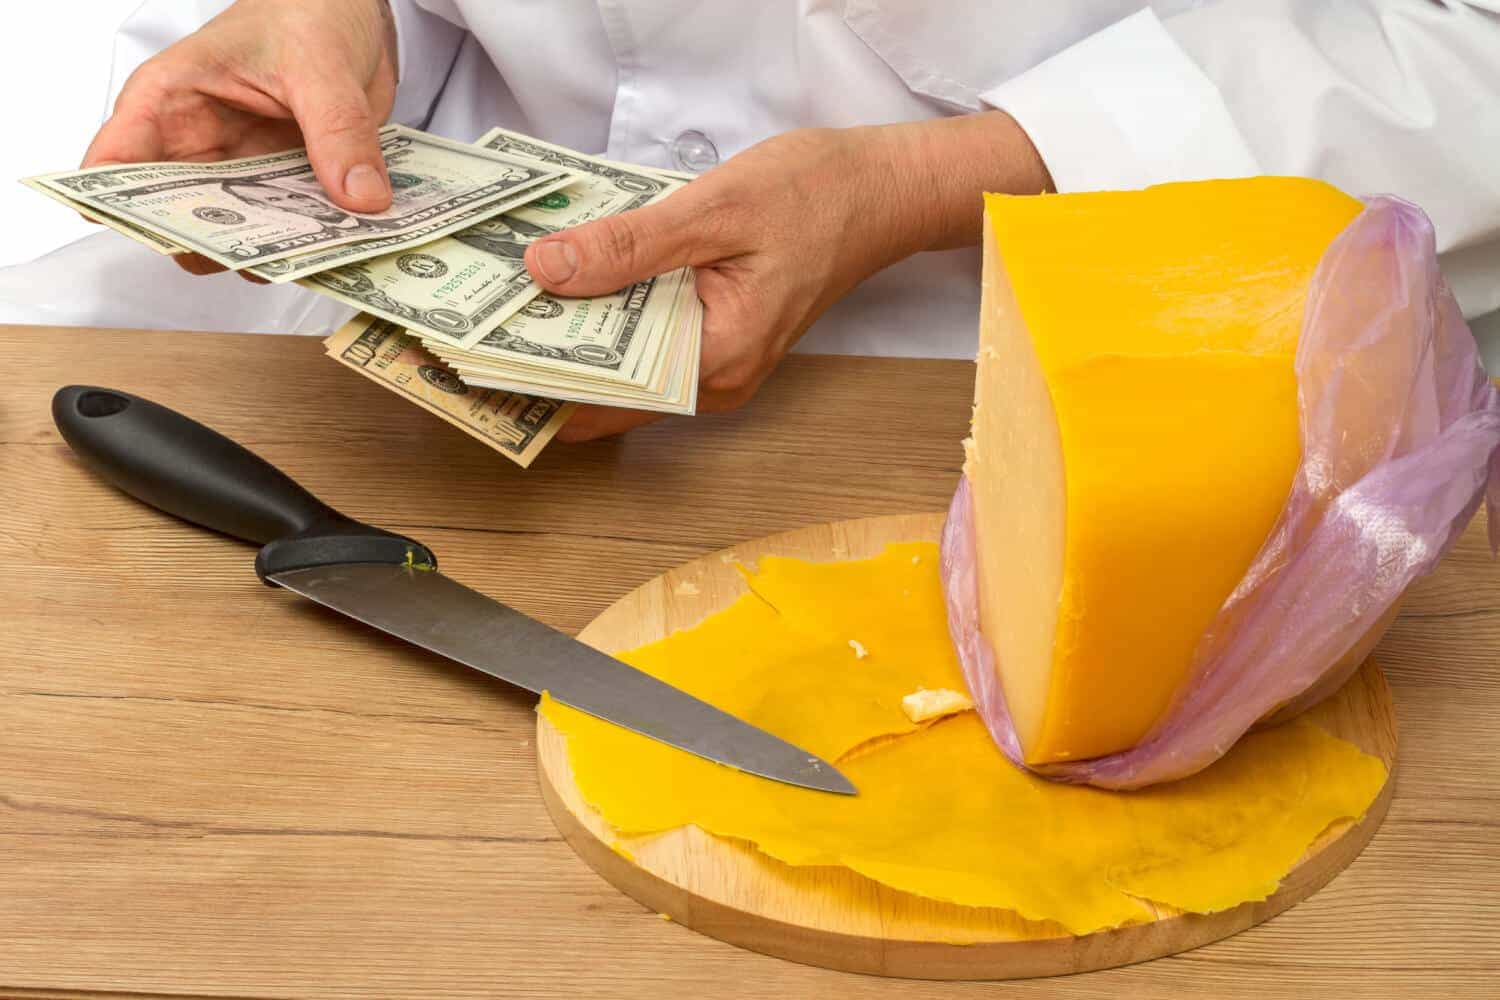 A man with a block of cheese counts his discretionary income